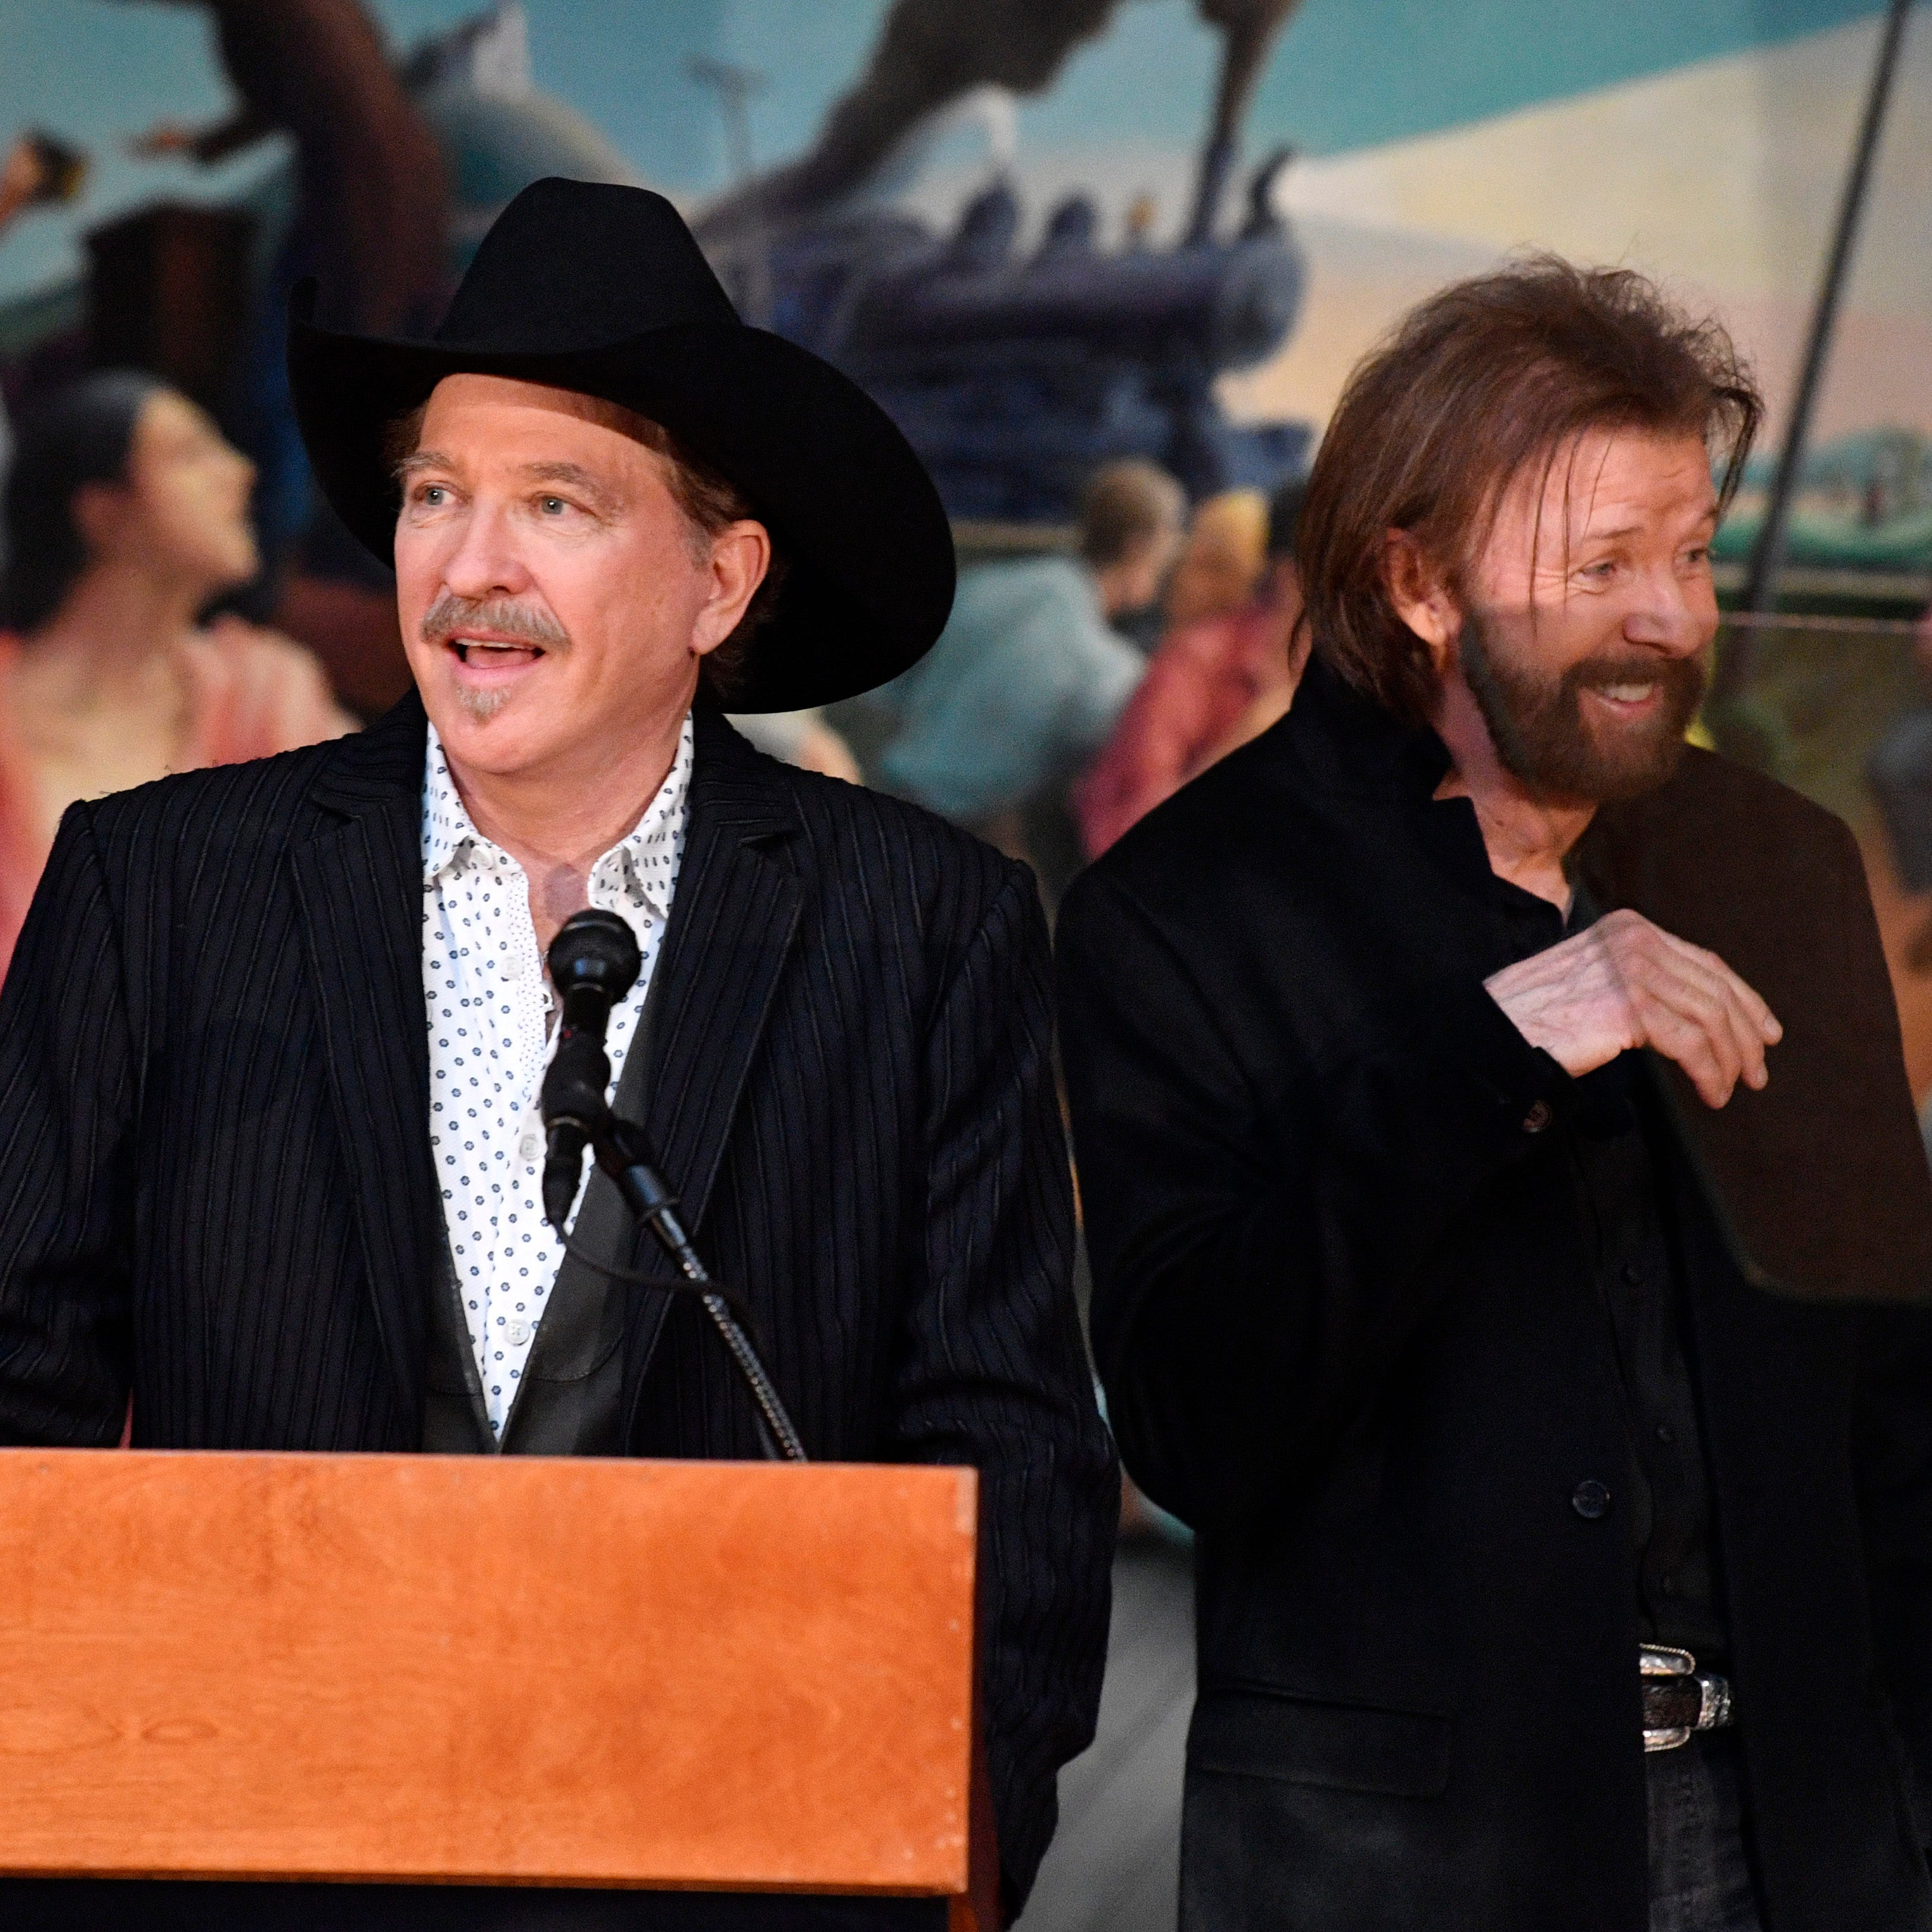 Brooks & Dunn, Ray Stevens and Jerry Bradley bound for Country Music Hall of Fame